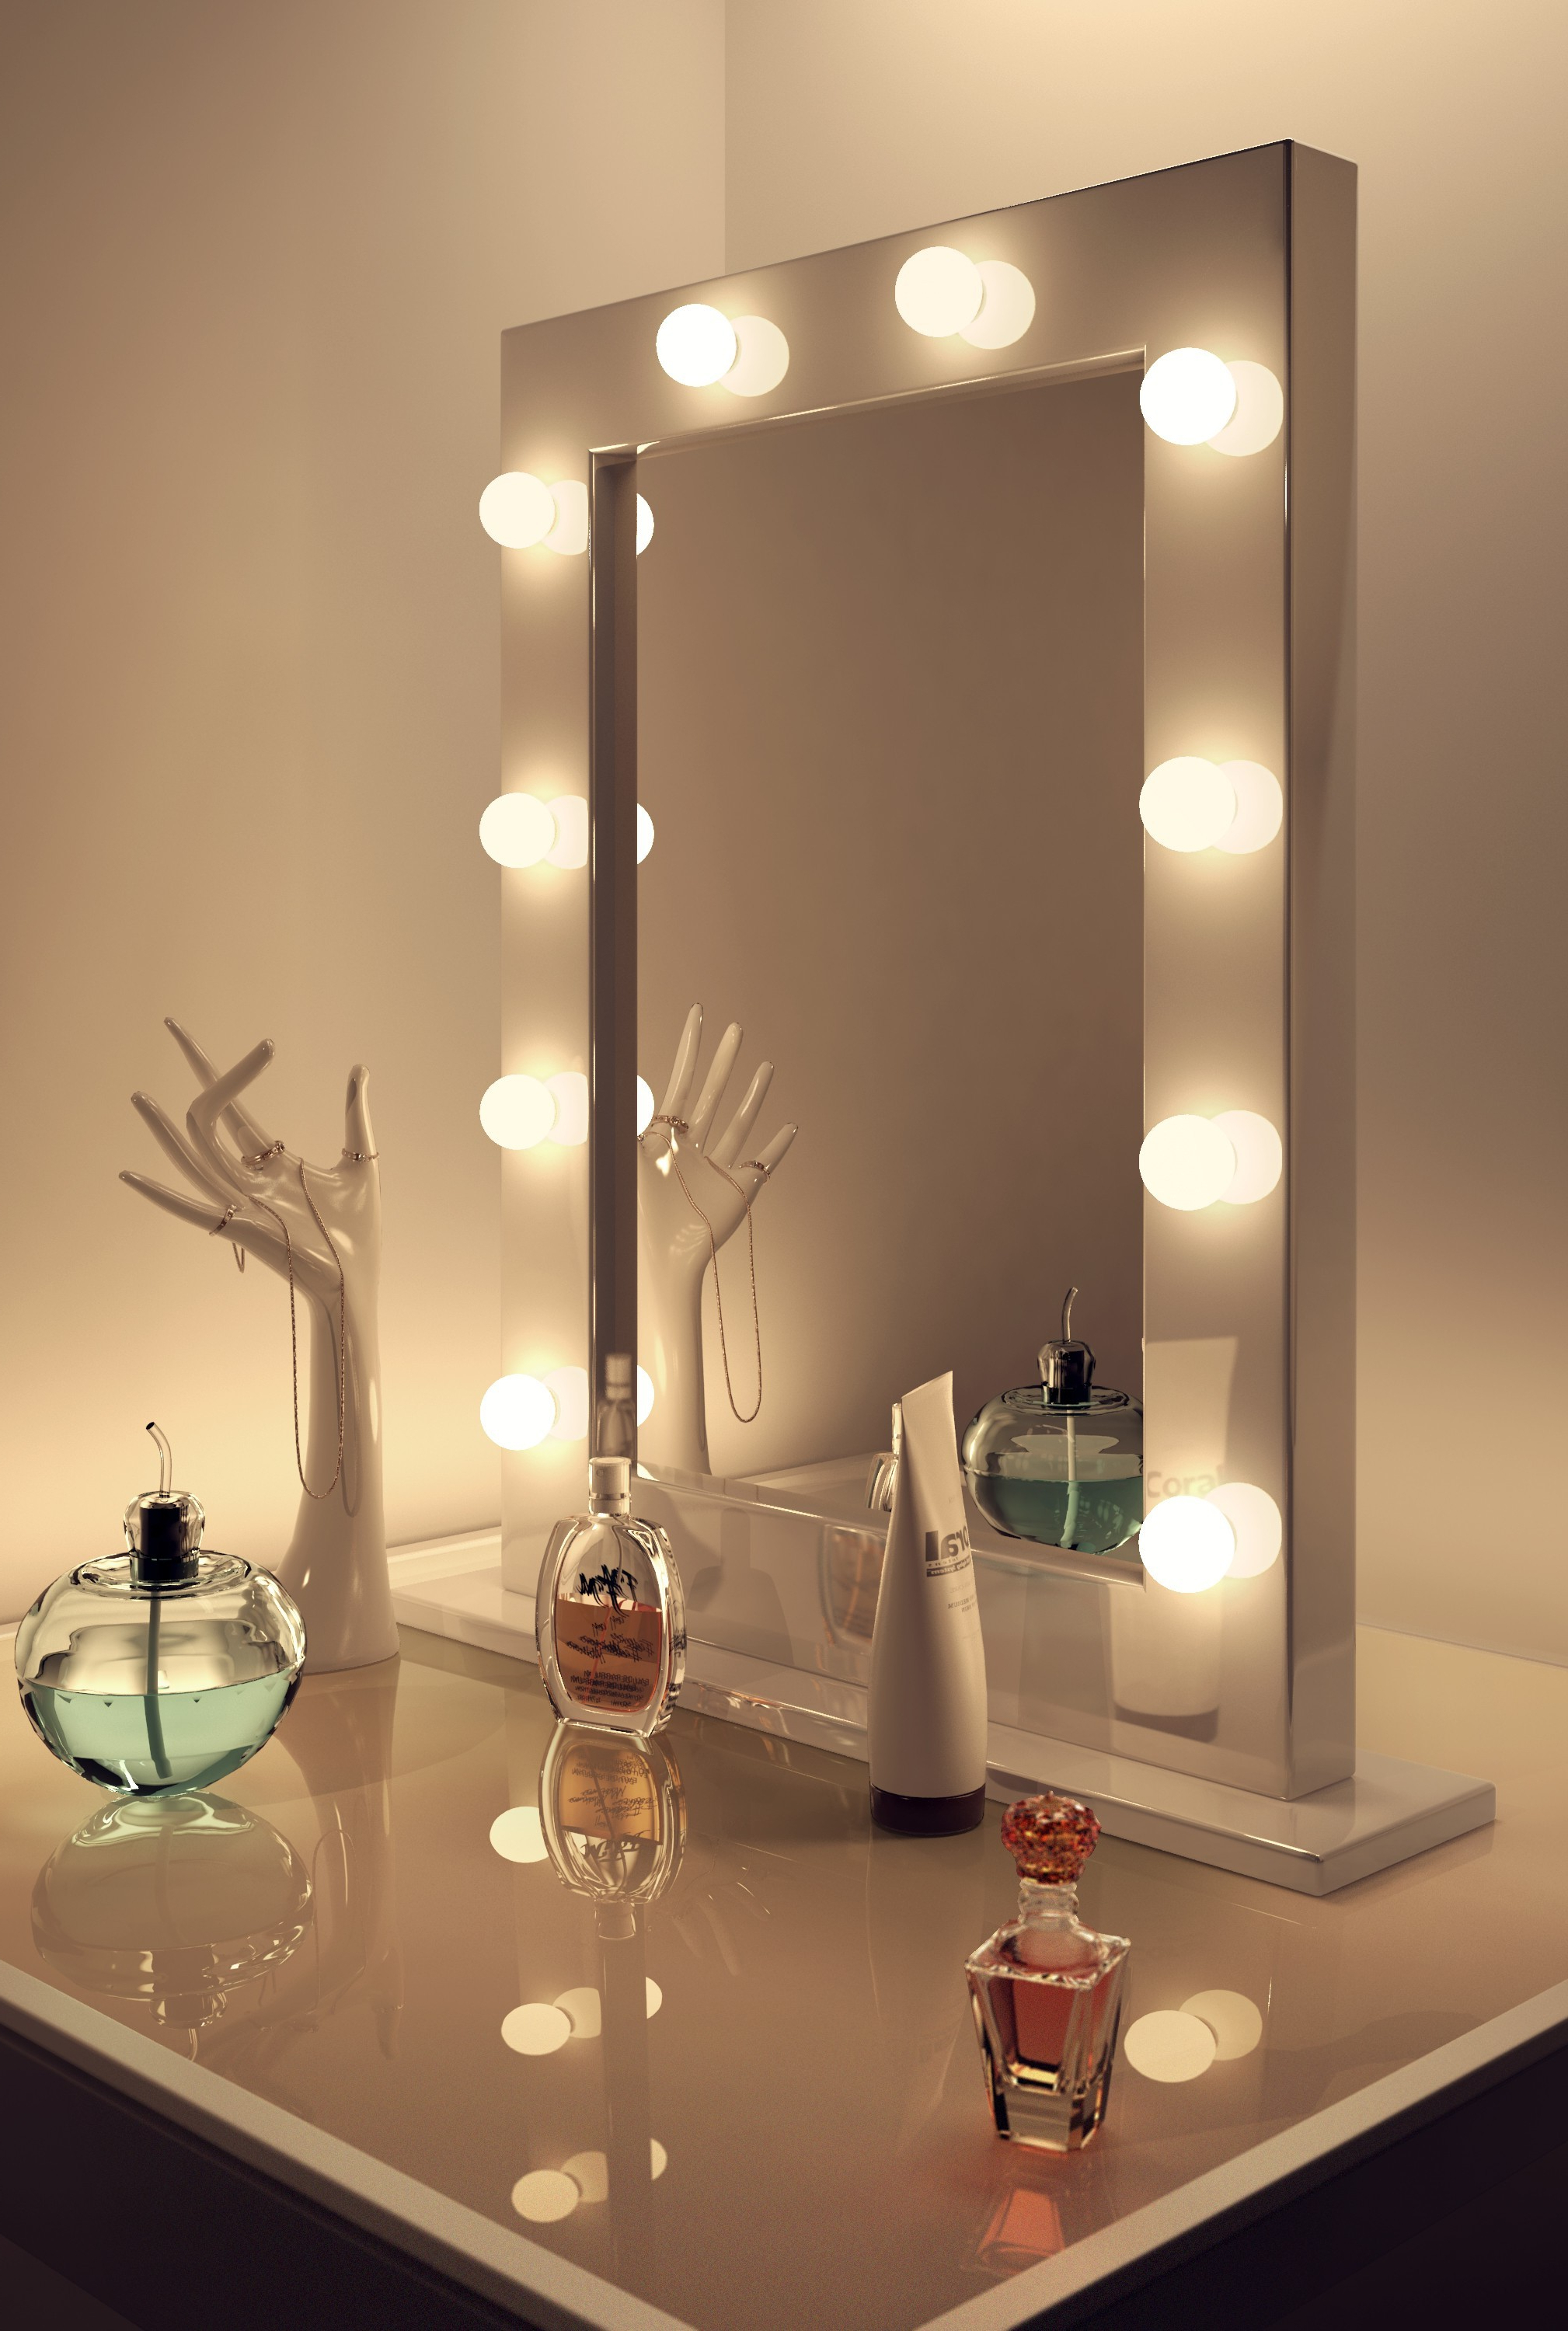 Vanity Wall Mirror With Lights – A Great Way To Light Up In Current Wall Mirrors With Light (View 3 of 20)